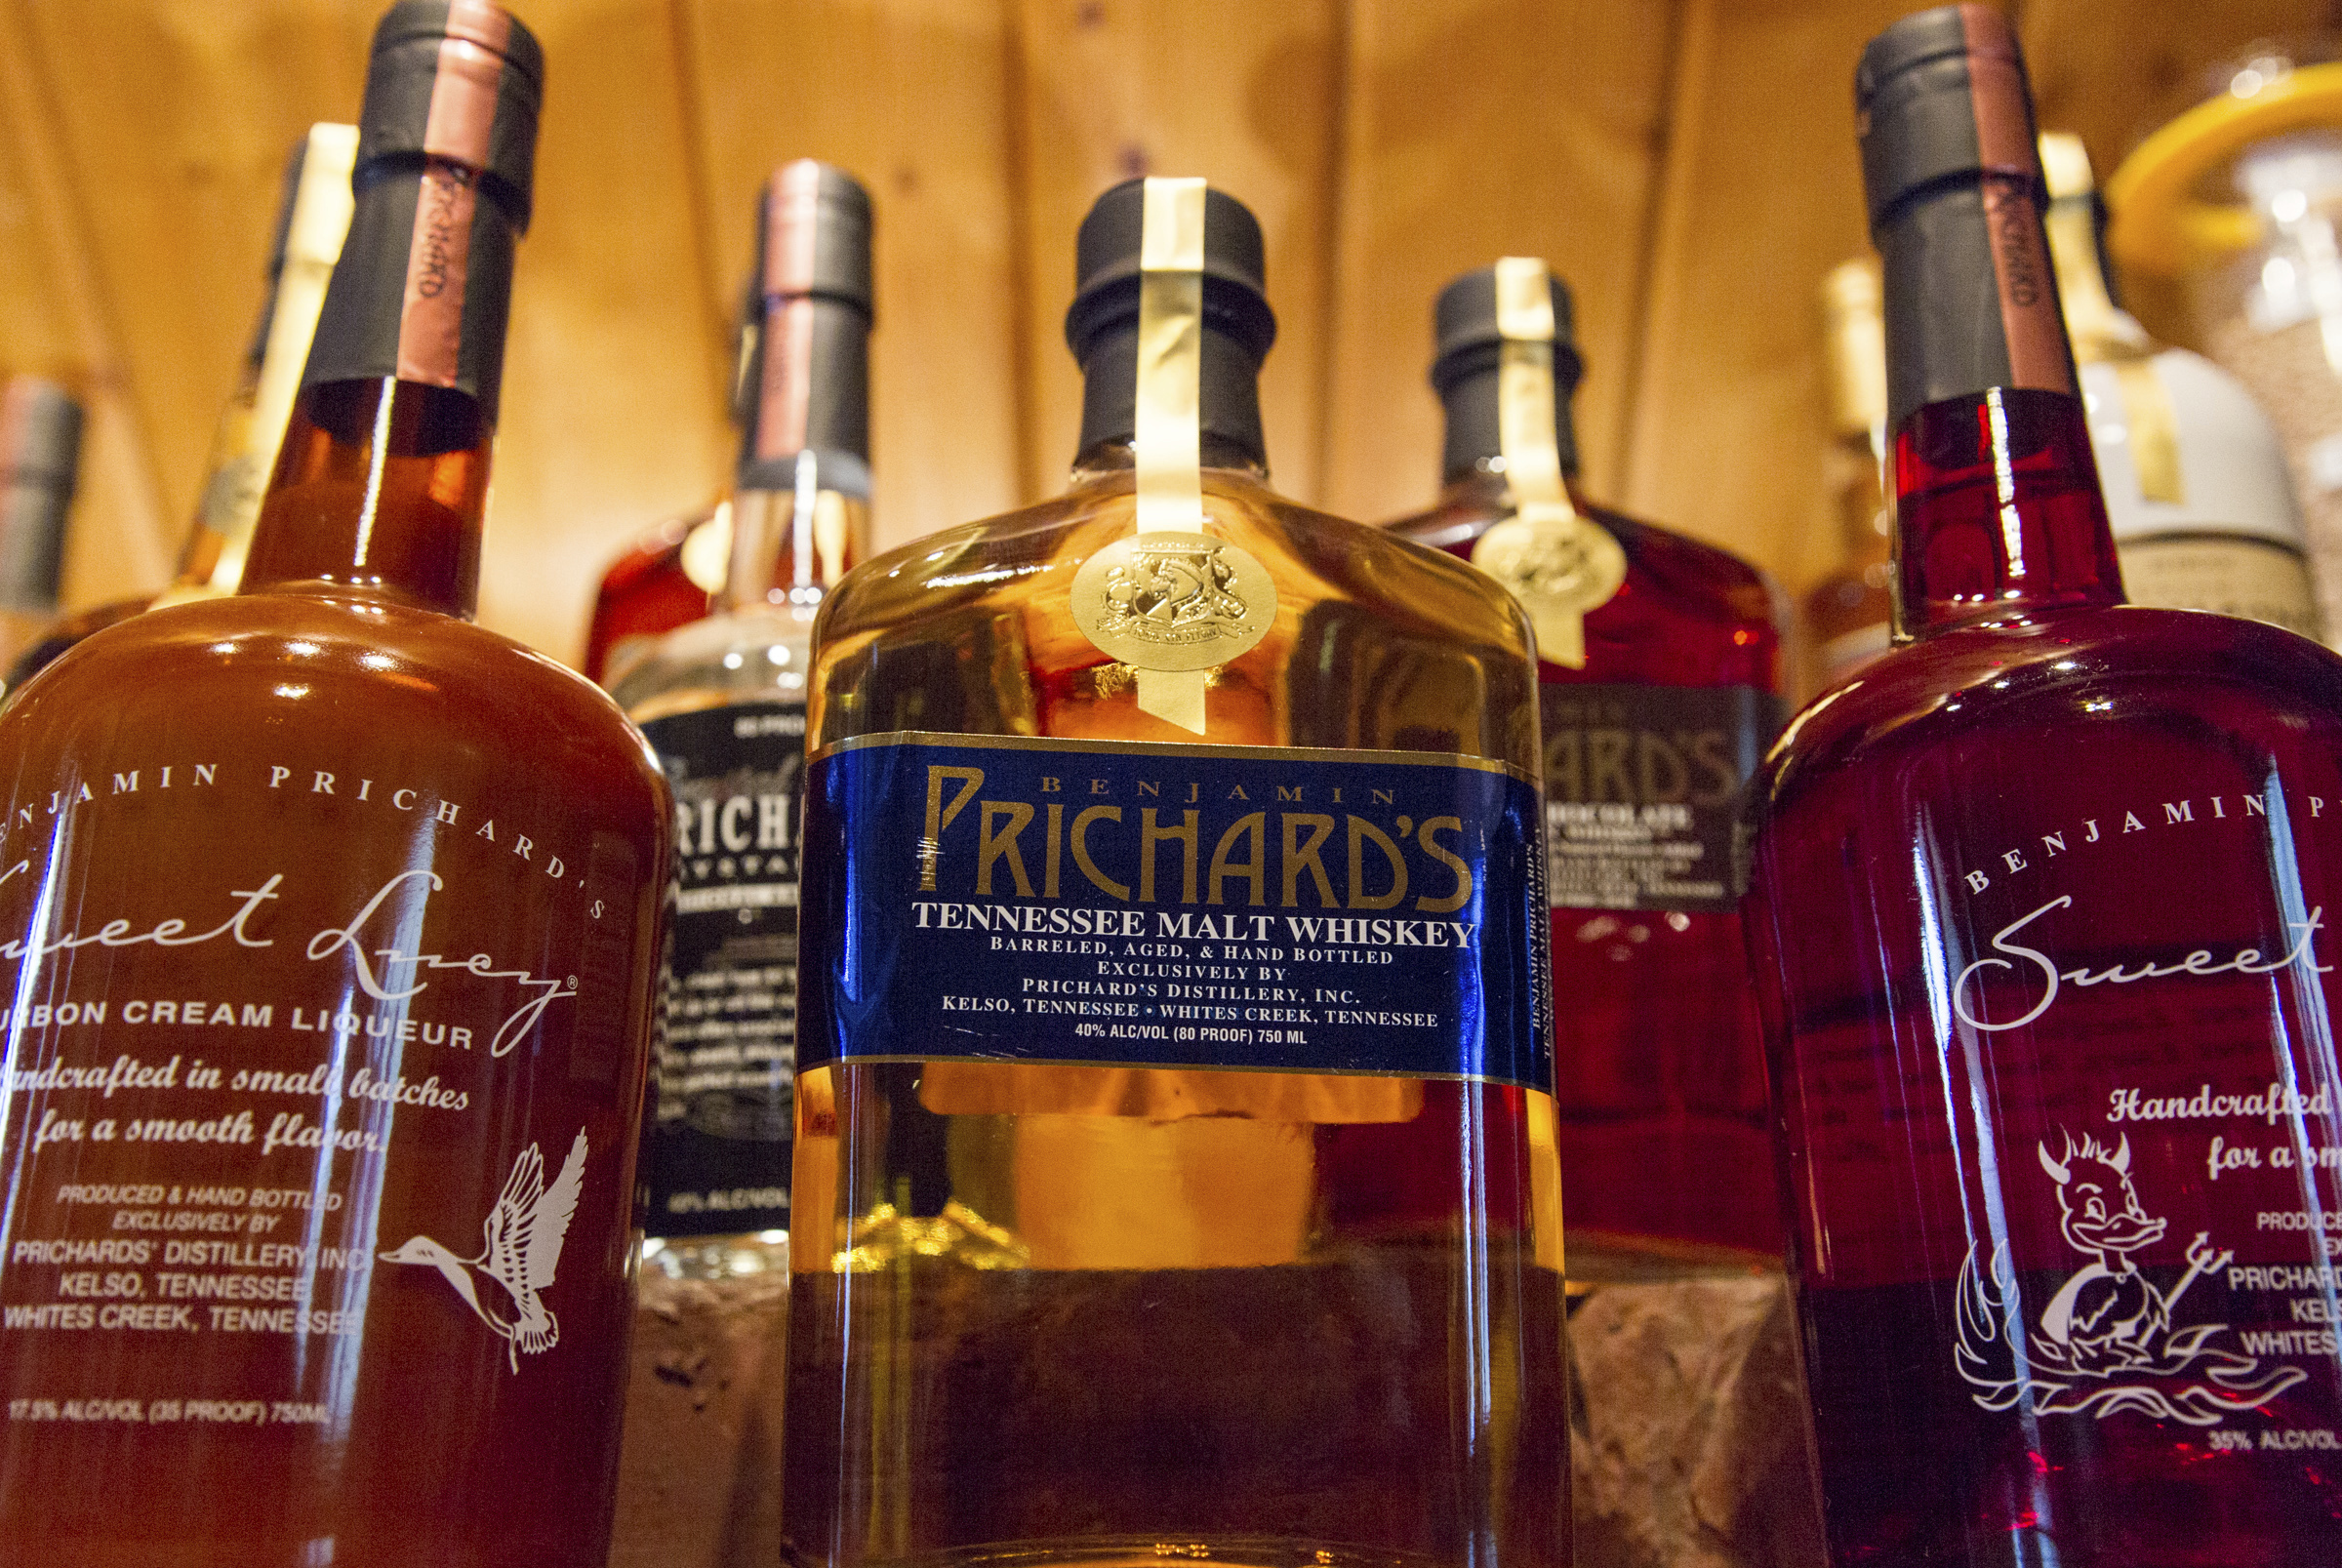 FILE - In this March 19, 2015 file photo, bottles of spirits are on display at the Prichard's Distillery in Nashville, Tenn. A spirits industry trade group says the tariff-induced hangover for American whiskey producers became more painful in late 2018. (AP Photo/Erik Schelzig)